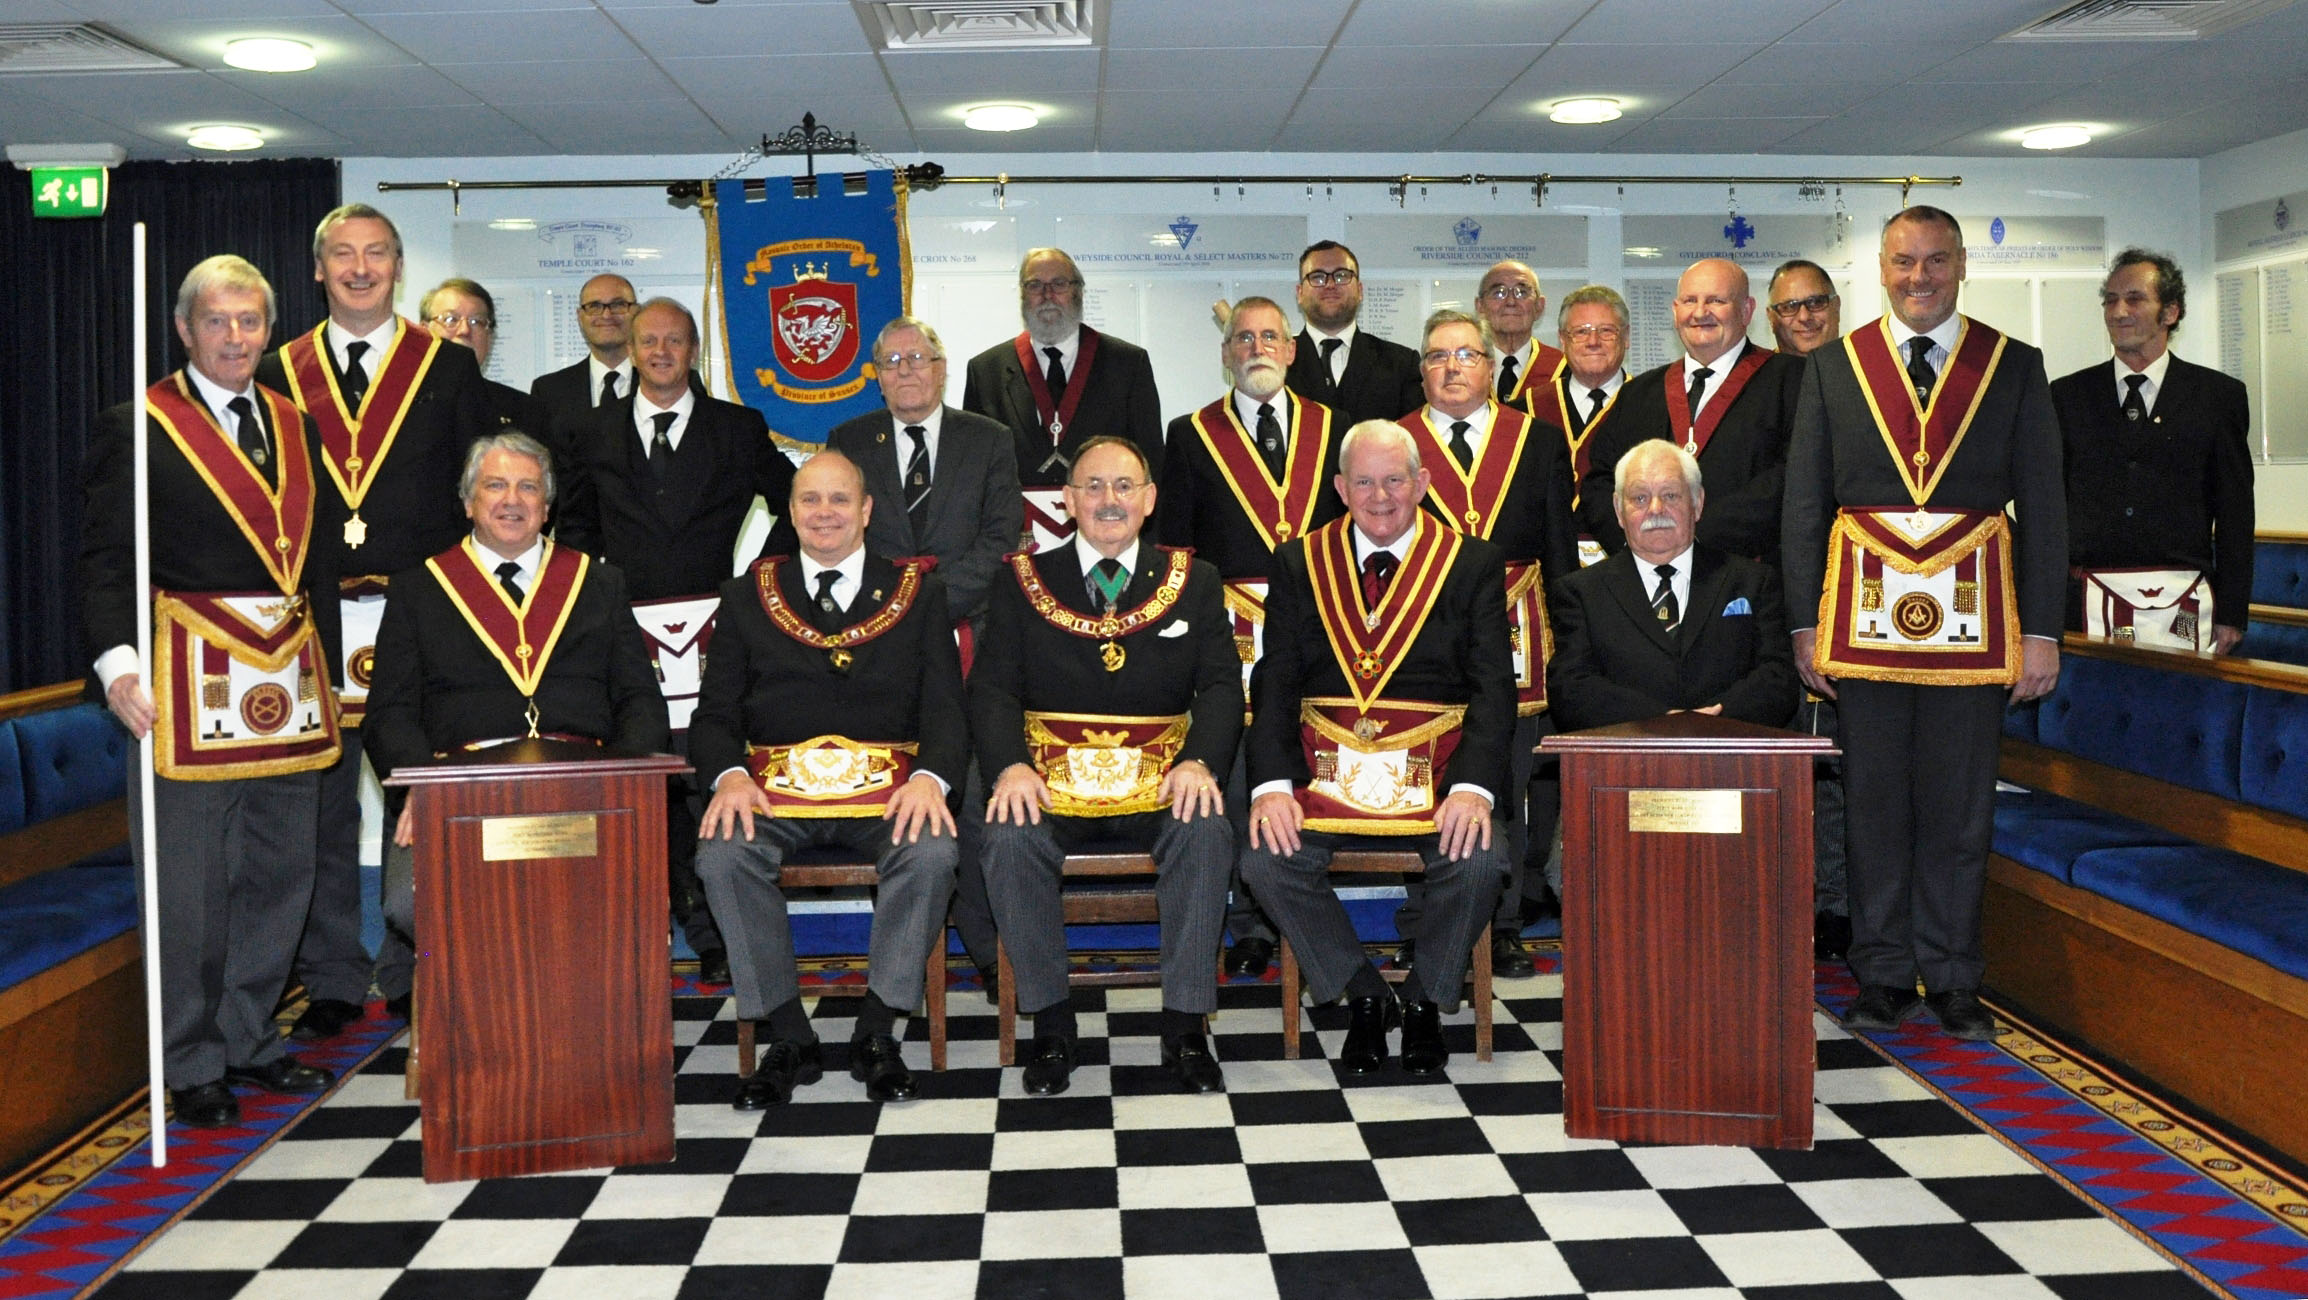 Executive Visit by the Provincial Grand Master to the Court of Harrow Way